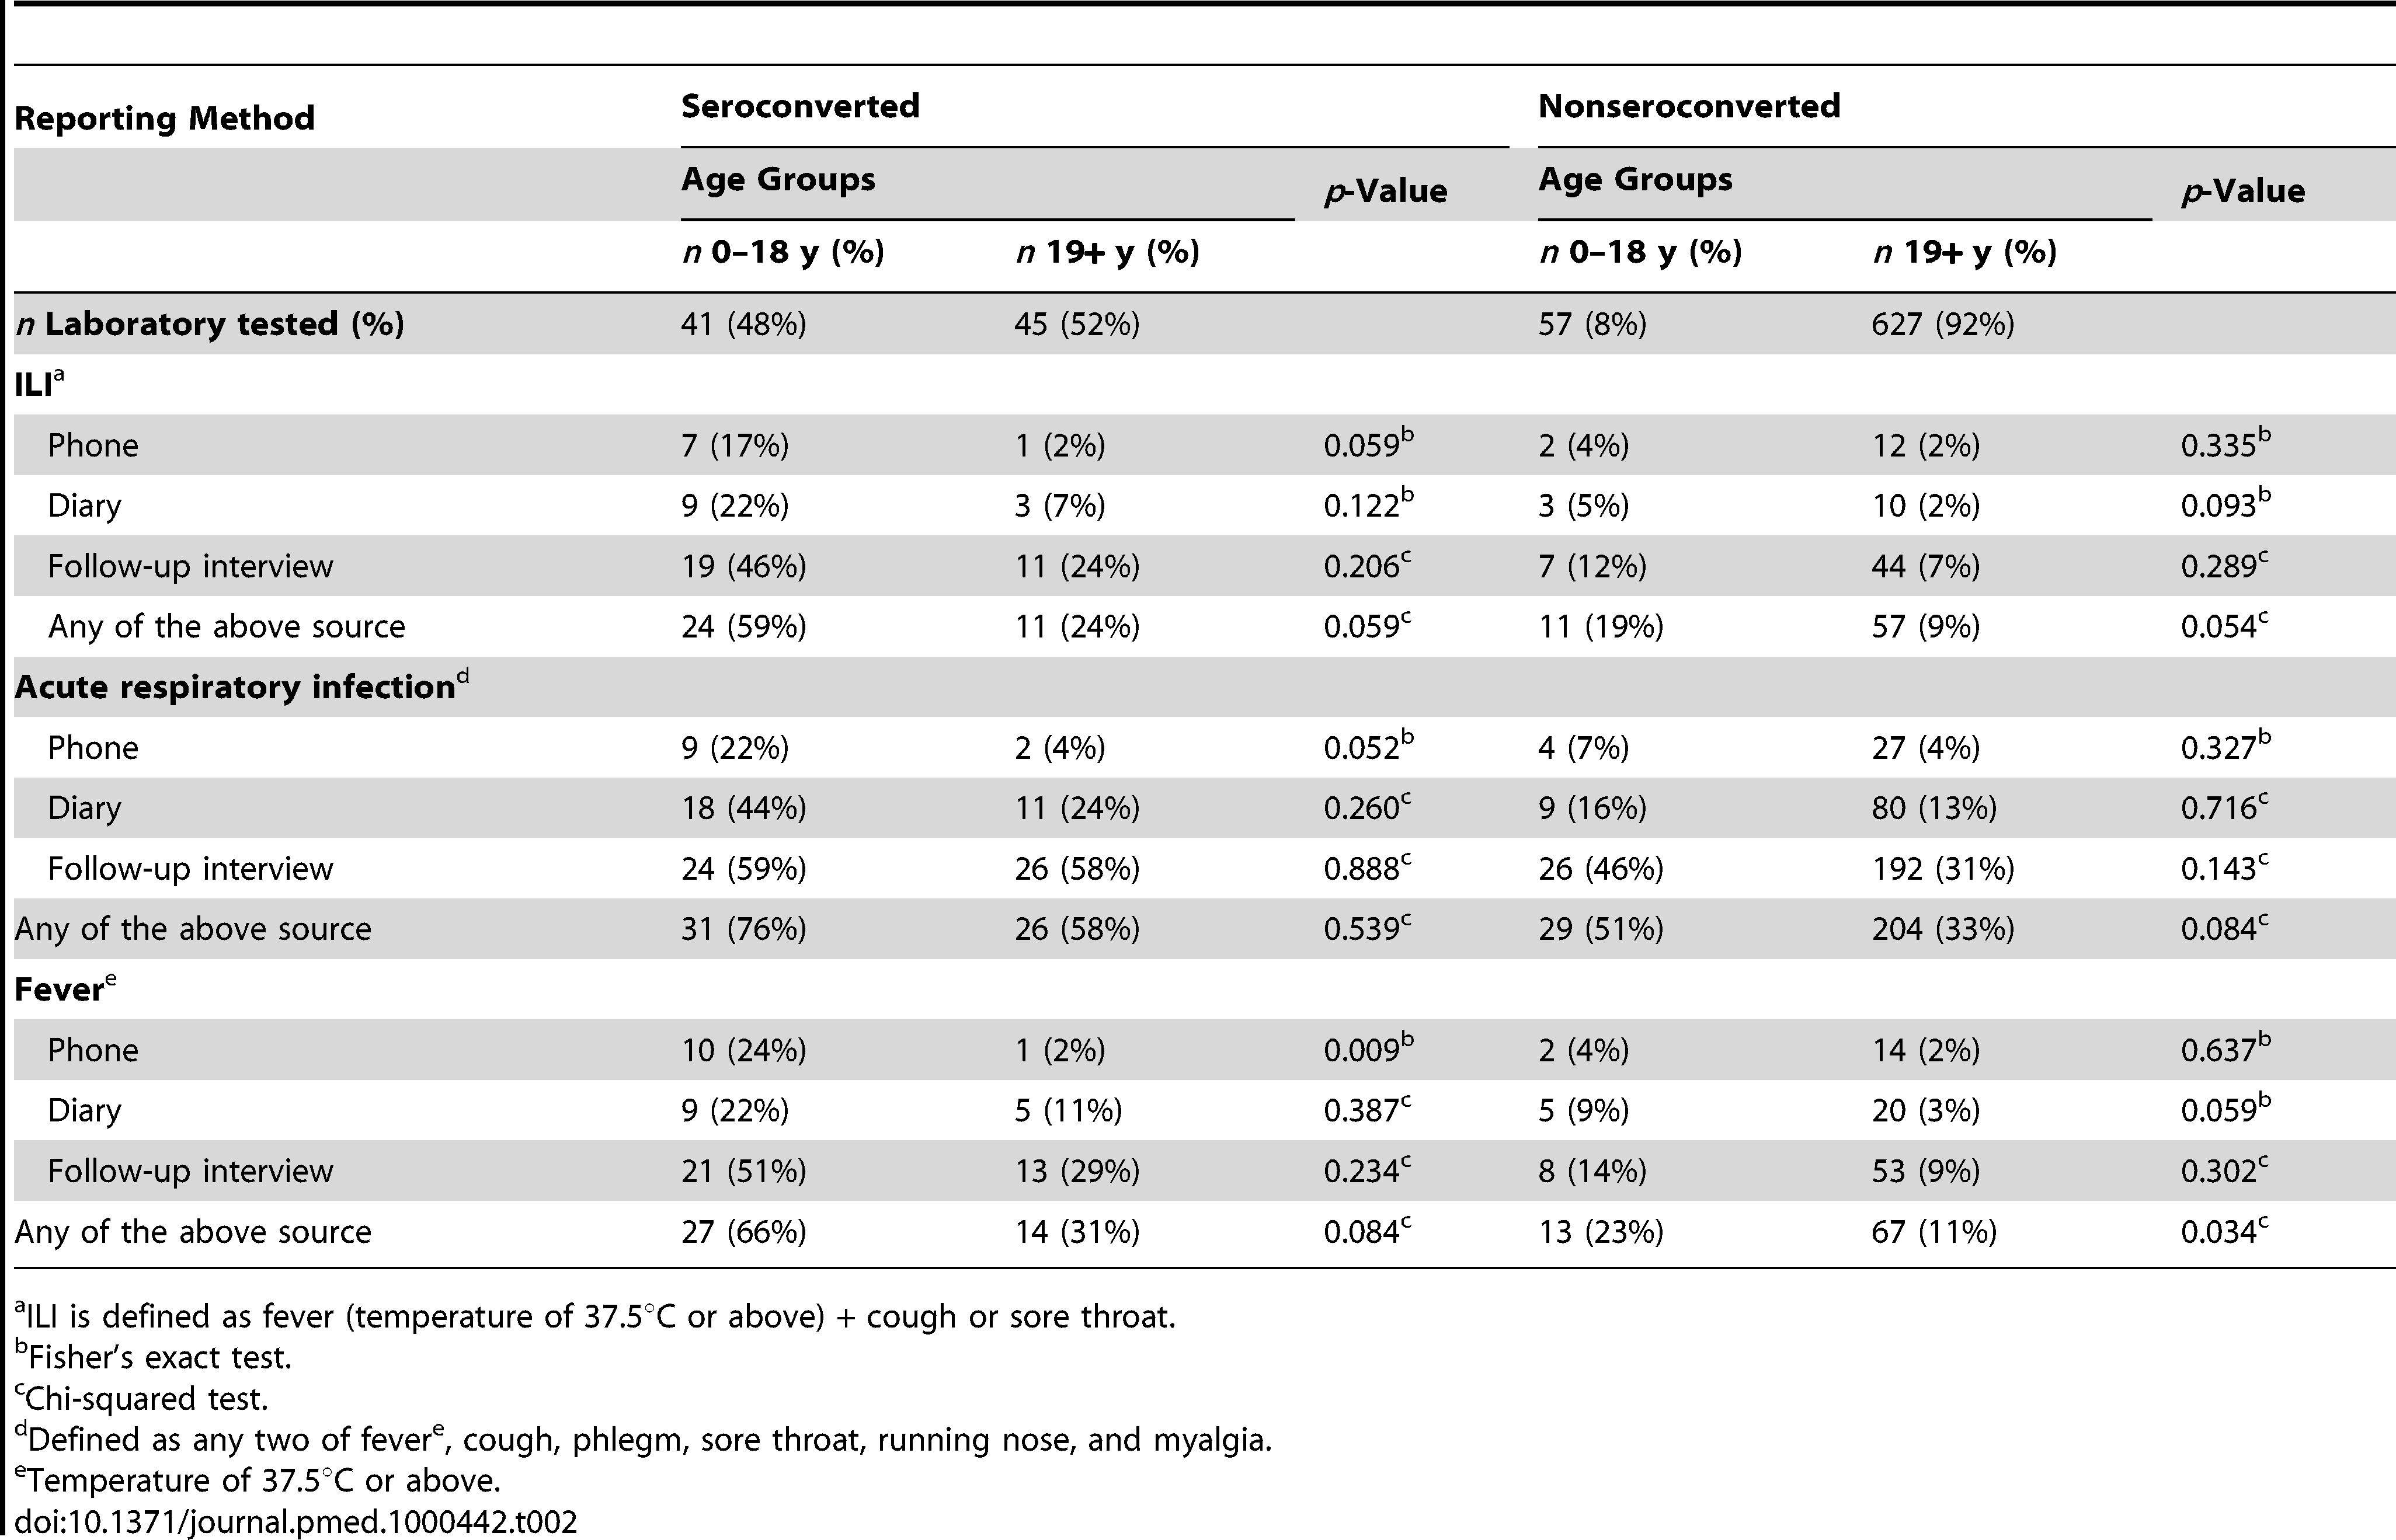 Symptoms reported by study participants by infection status, symptom definition, and method of reporting.